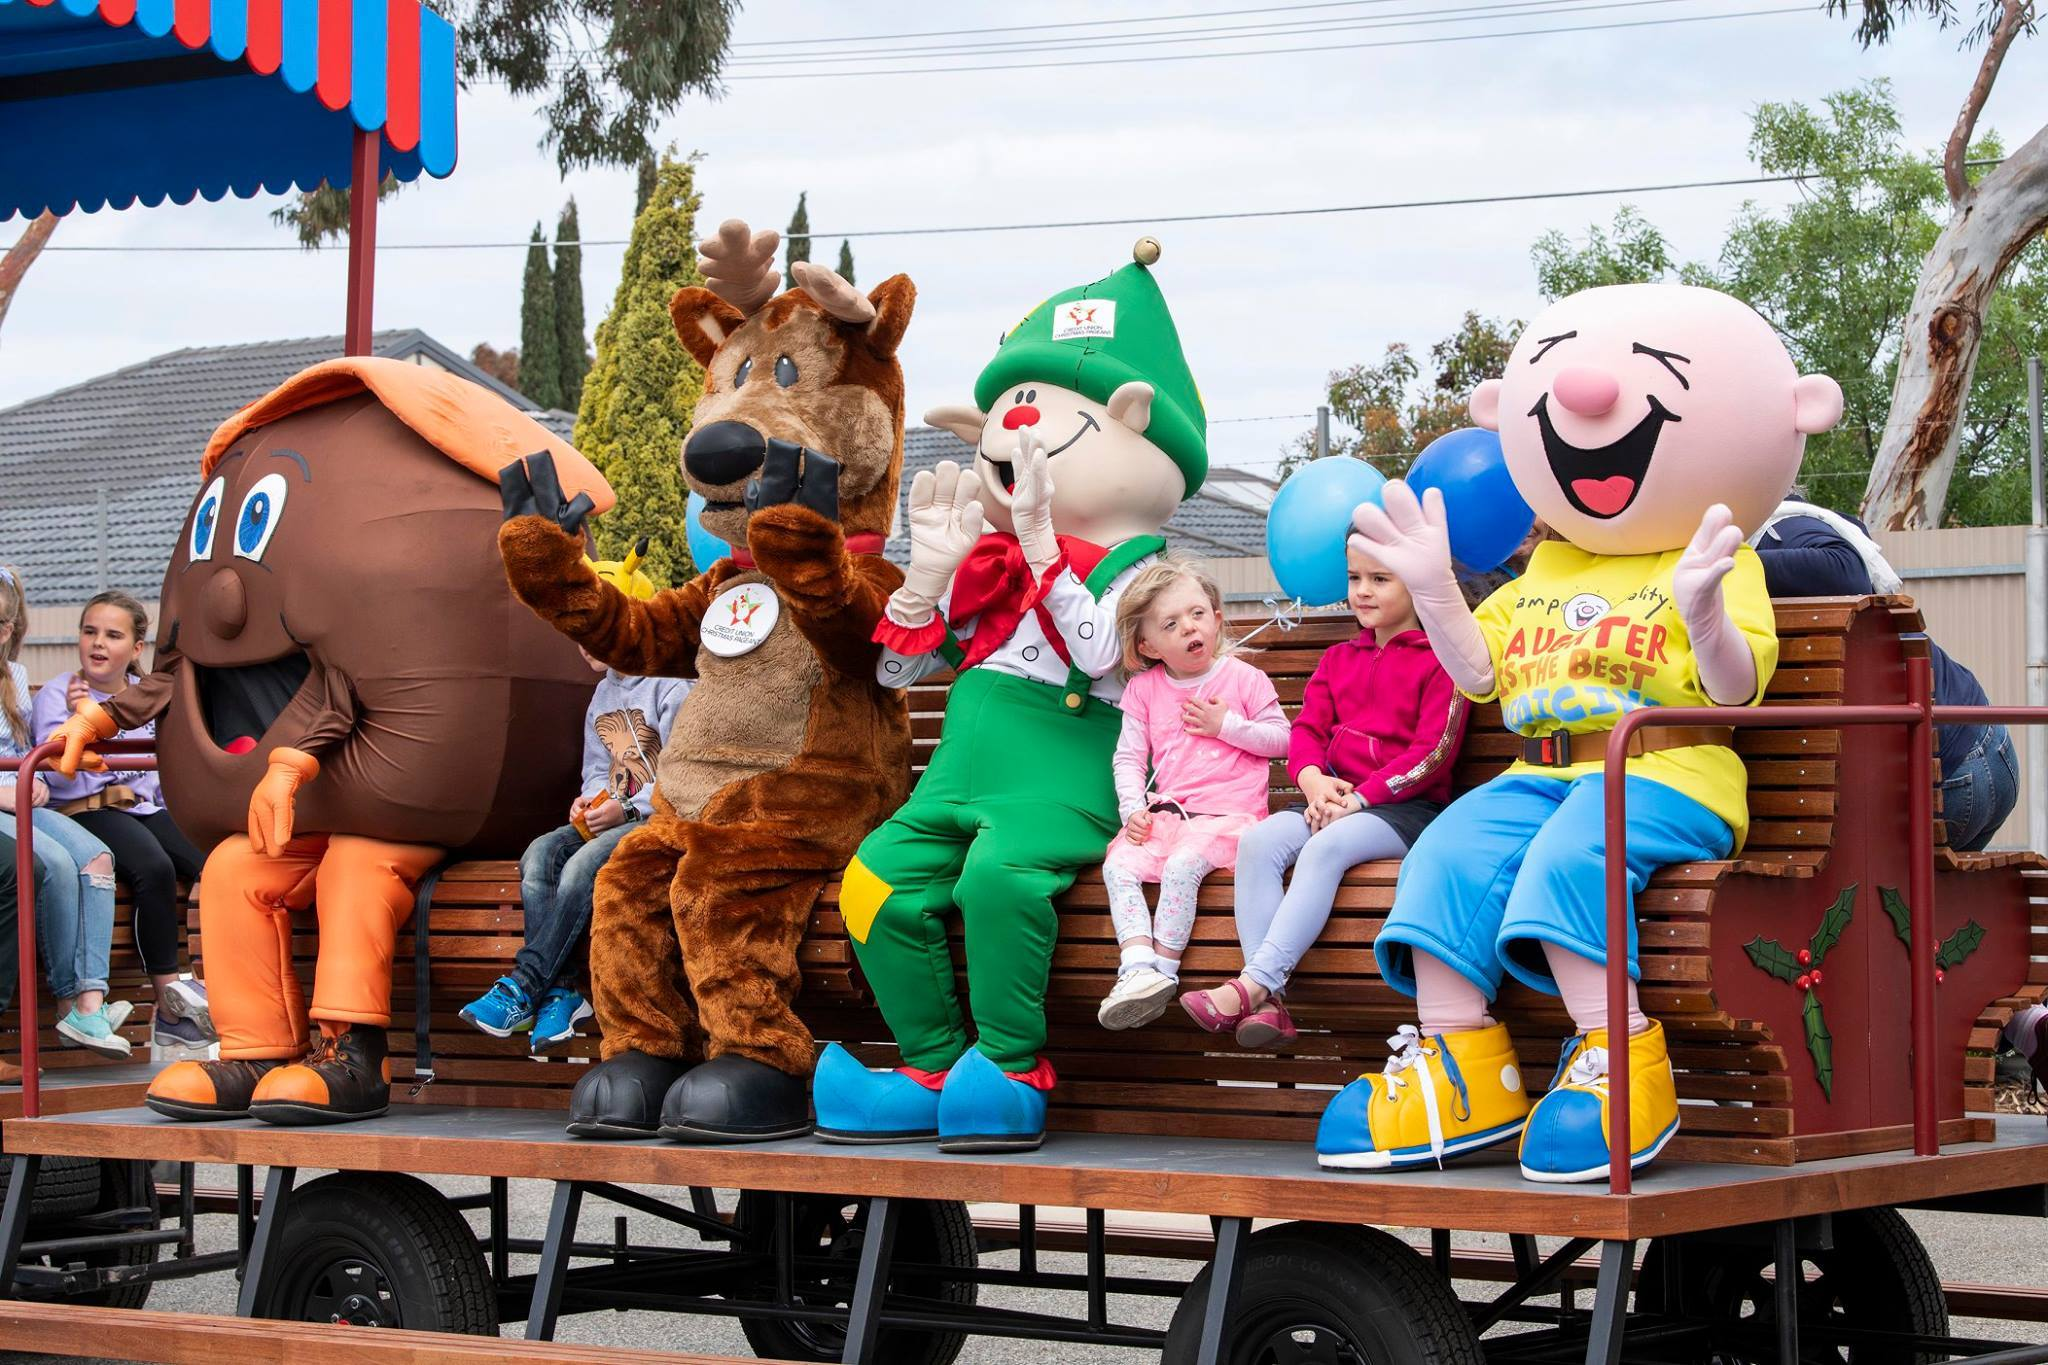 Christmas Pageant 2020 Credit Union Christmas Pageant 2020 Tv   Ythhur.newyear2020gifts.info